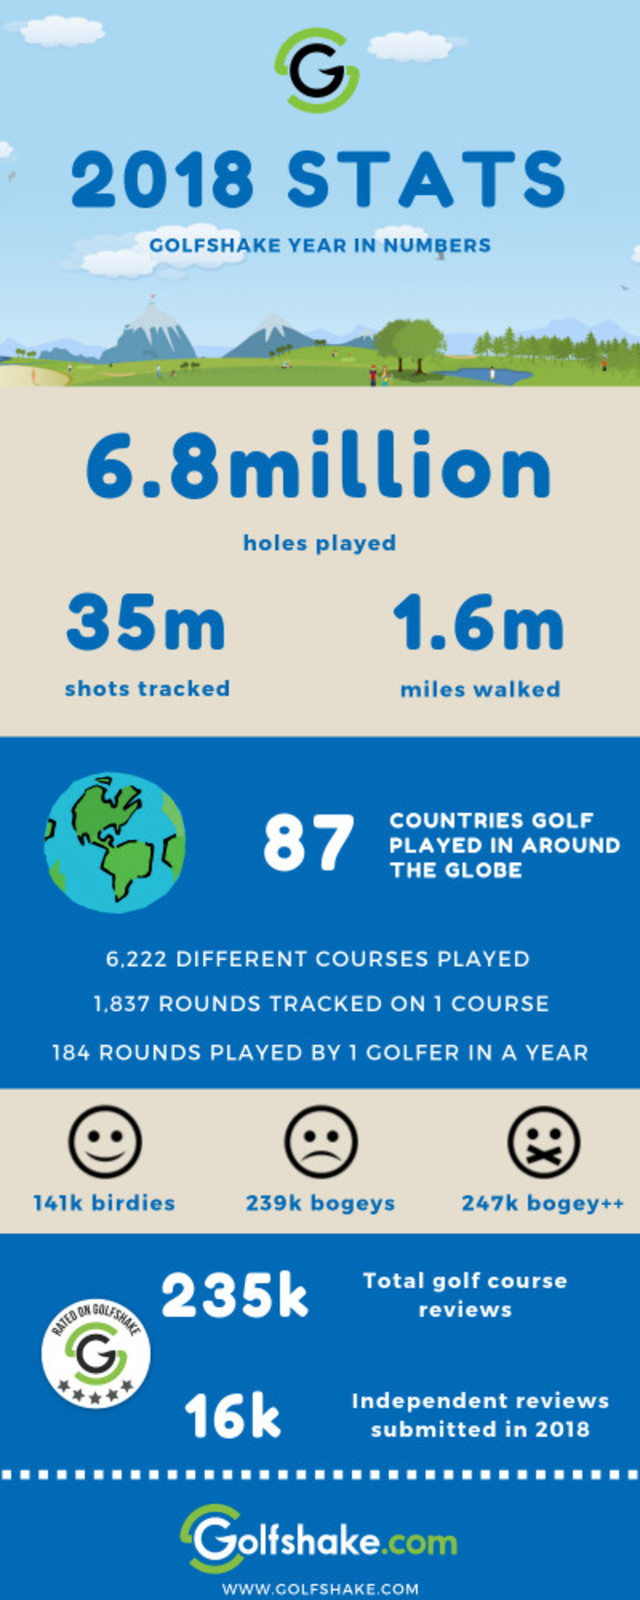 Golfshake in numbers 2018